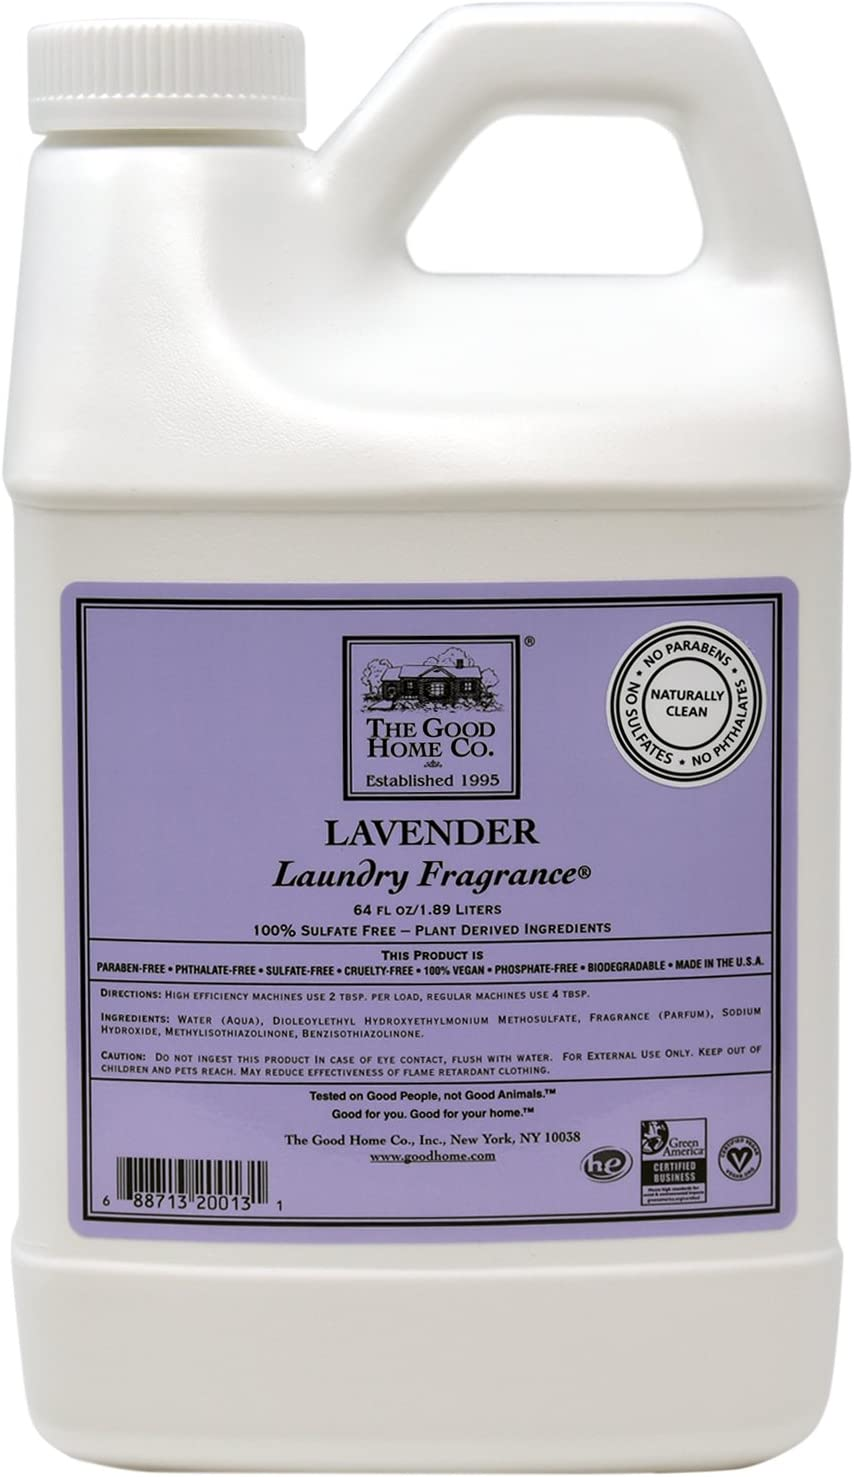 THE GOOD HOME COMPANY Laundry Fragrance Refill (Lavender)